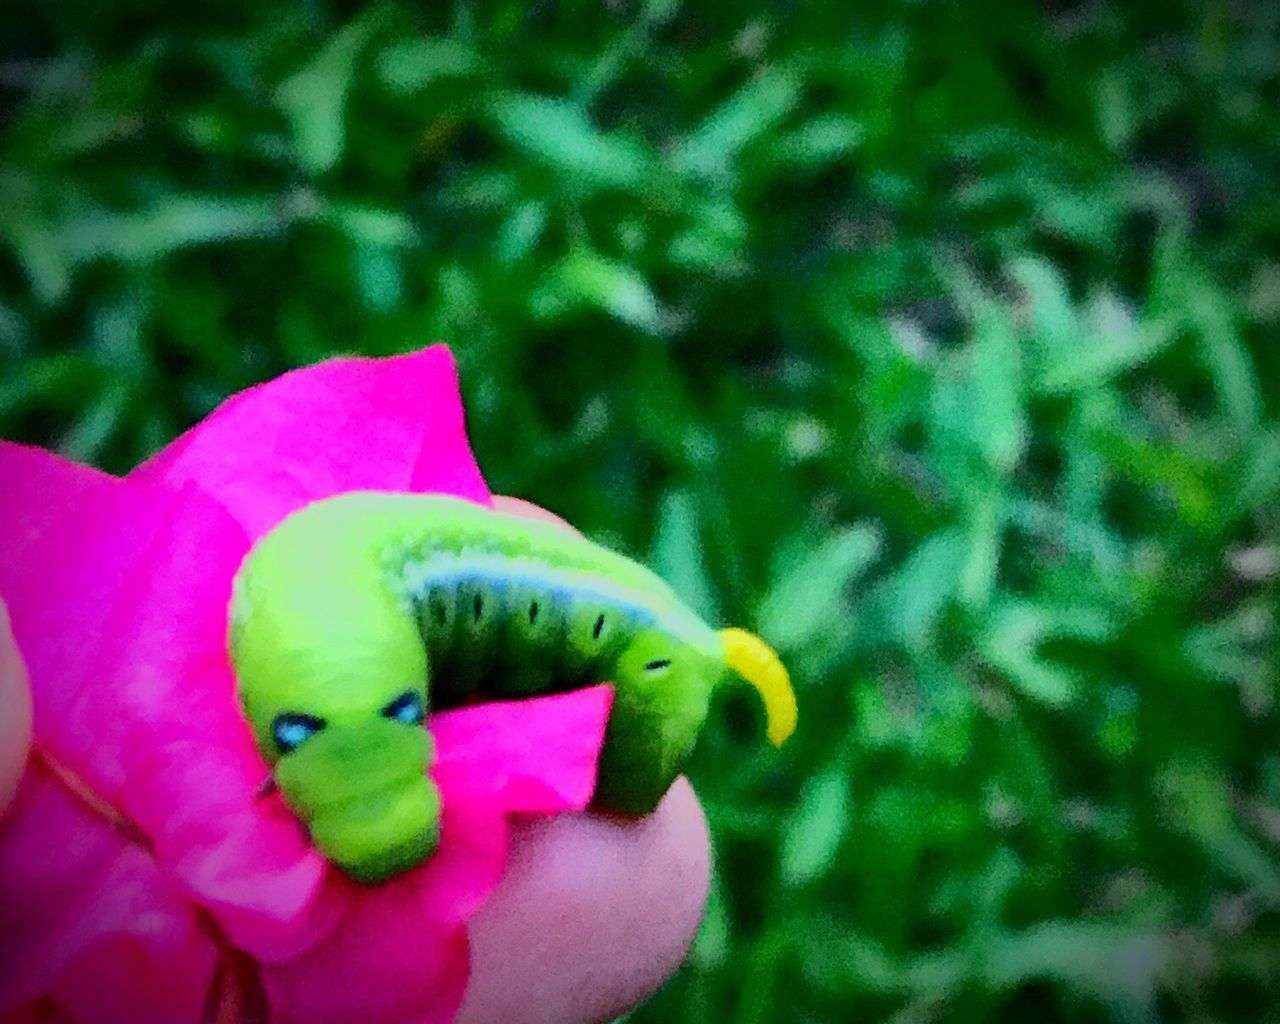 หนอนบุ้ง Close-up Green Color Pink Color Nature Day Outdoors Animal Themes Real People Beauty In Nature Flower Head One Person Holding Slug Slug Collection Slugs Buity In Nature EyeEm Nature Lover EyeEm